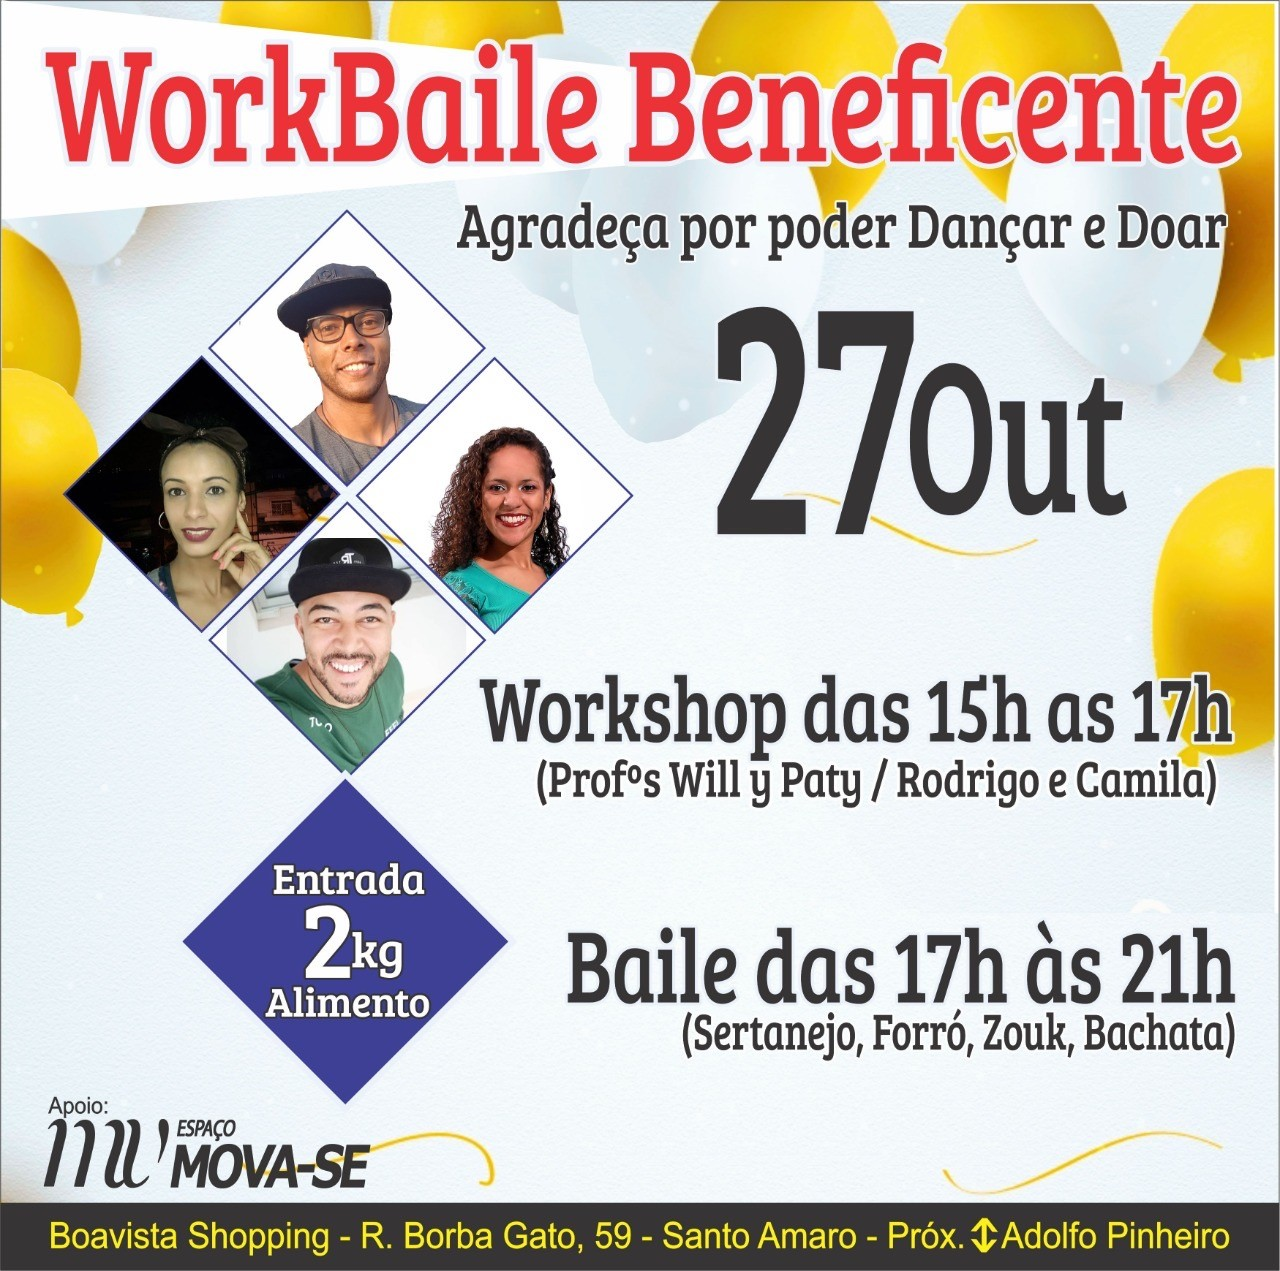 Participe do WorkBaile Beneficente e ajude o Grupo da Sopa!